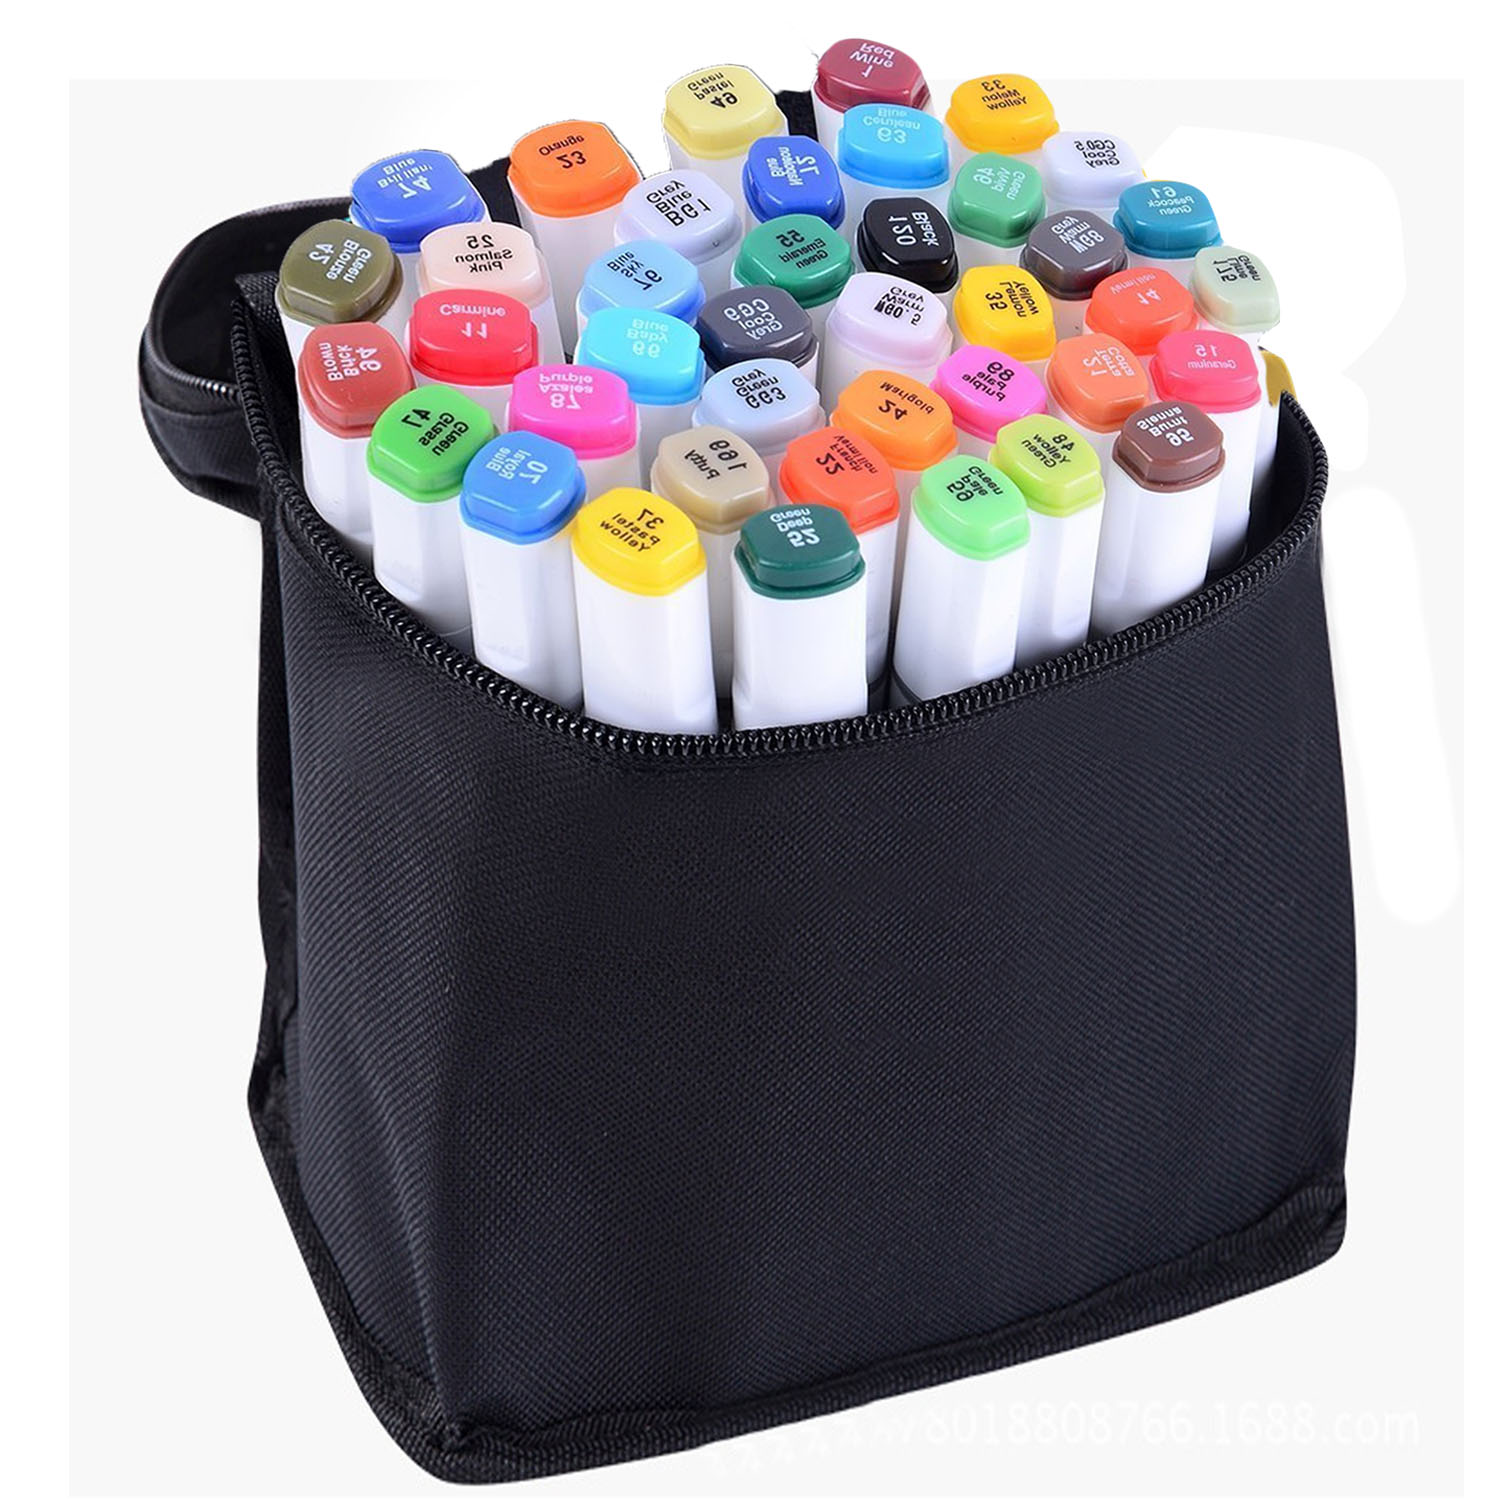 60 PCS Assorted Color Dual Tips Paint Art Sketch Twin Marker Pen Alcohol Based Ink for Art Crafting Poster Coloring Highlighting comby alcohol based twin art permanent marker pen color suit with free case